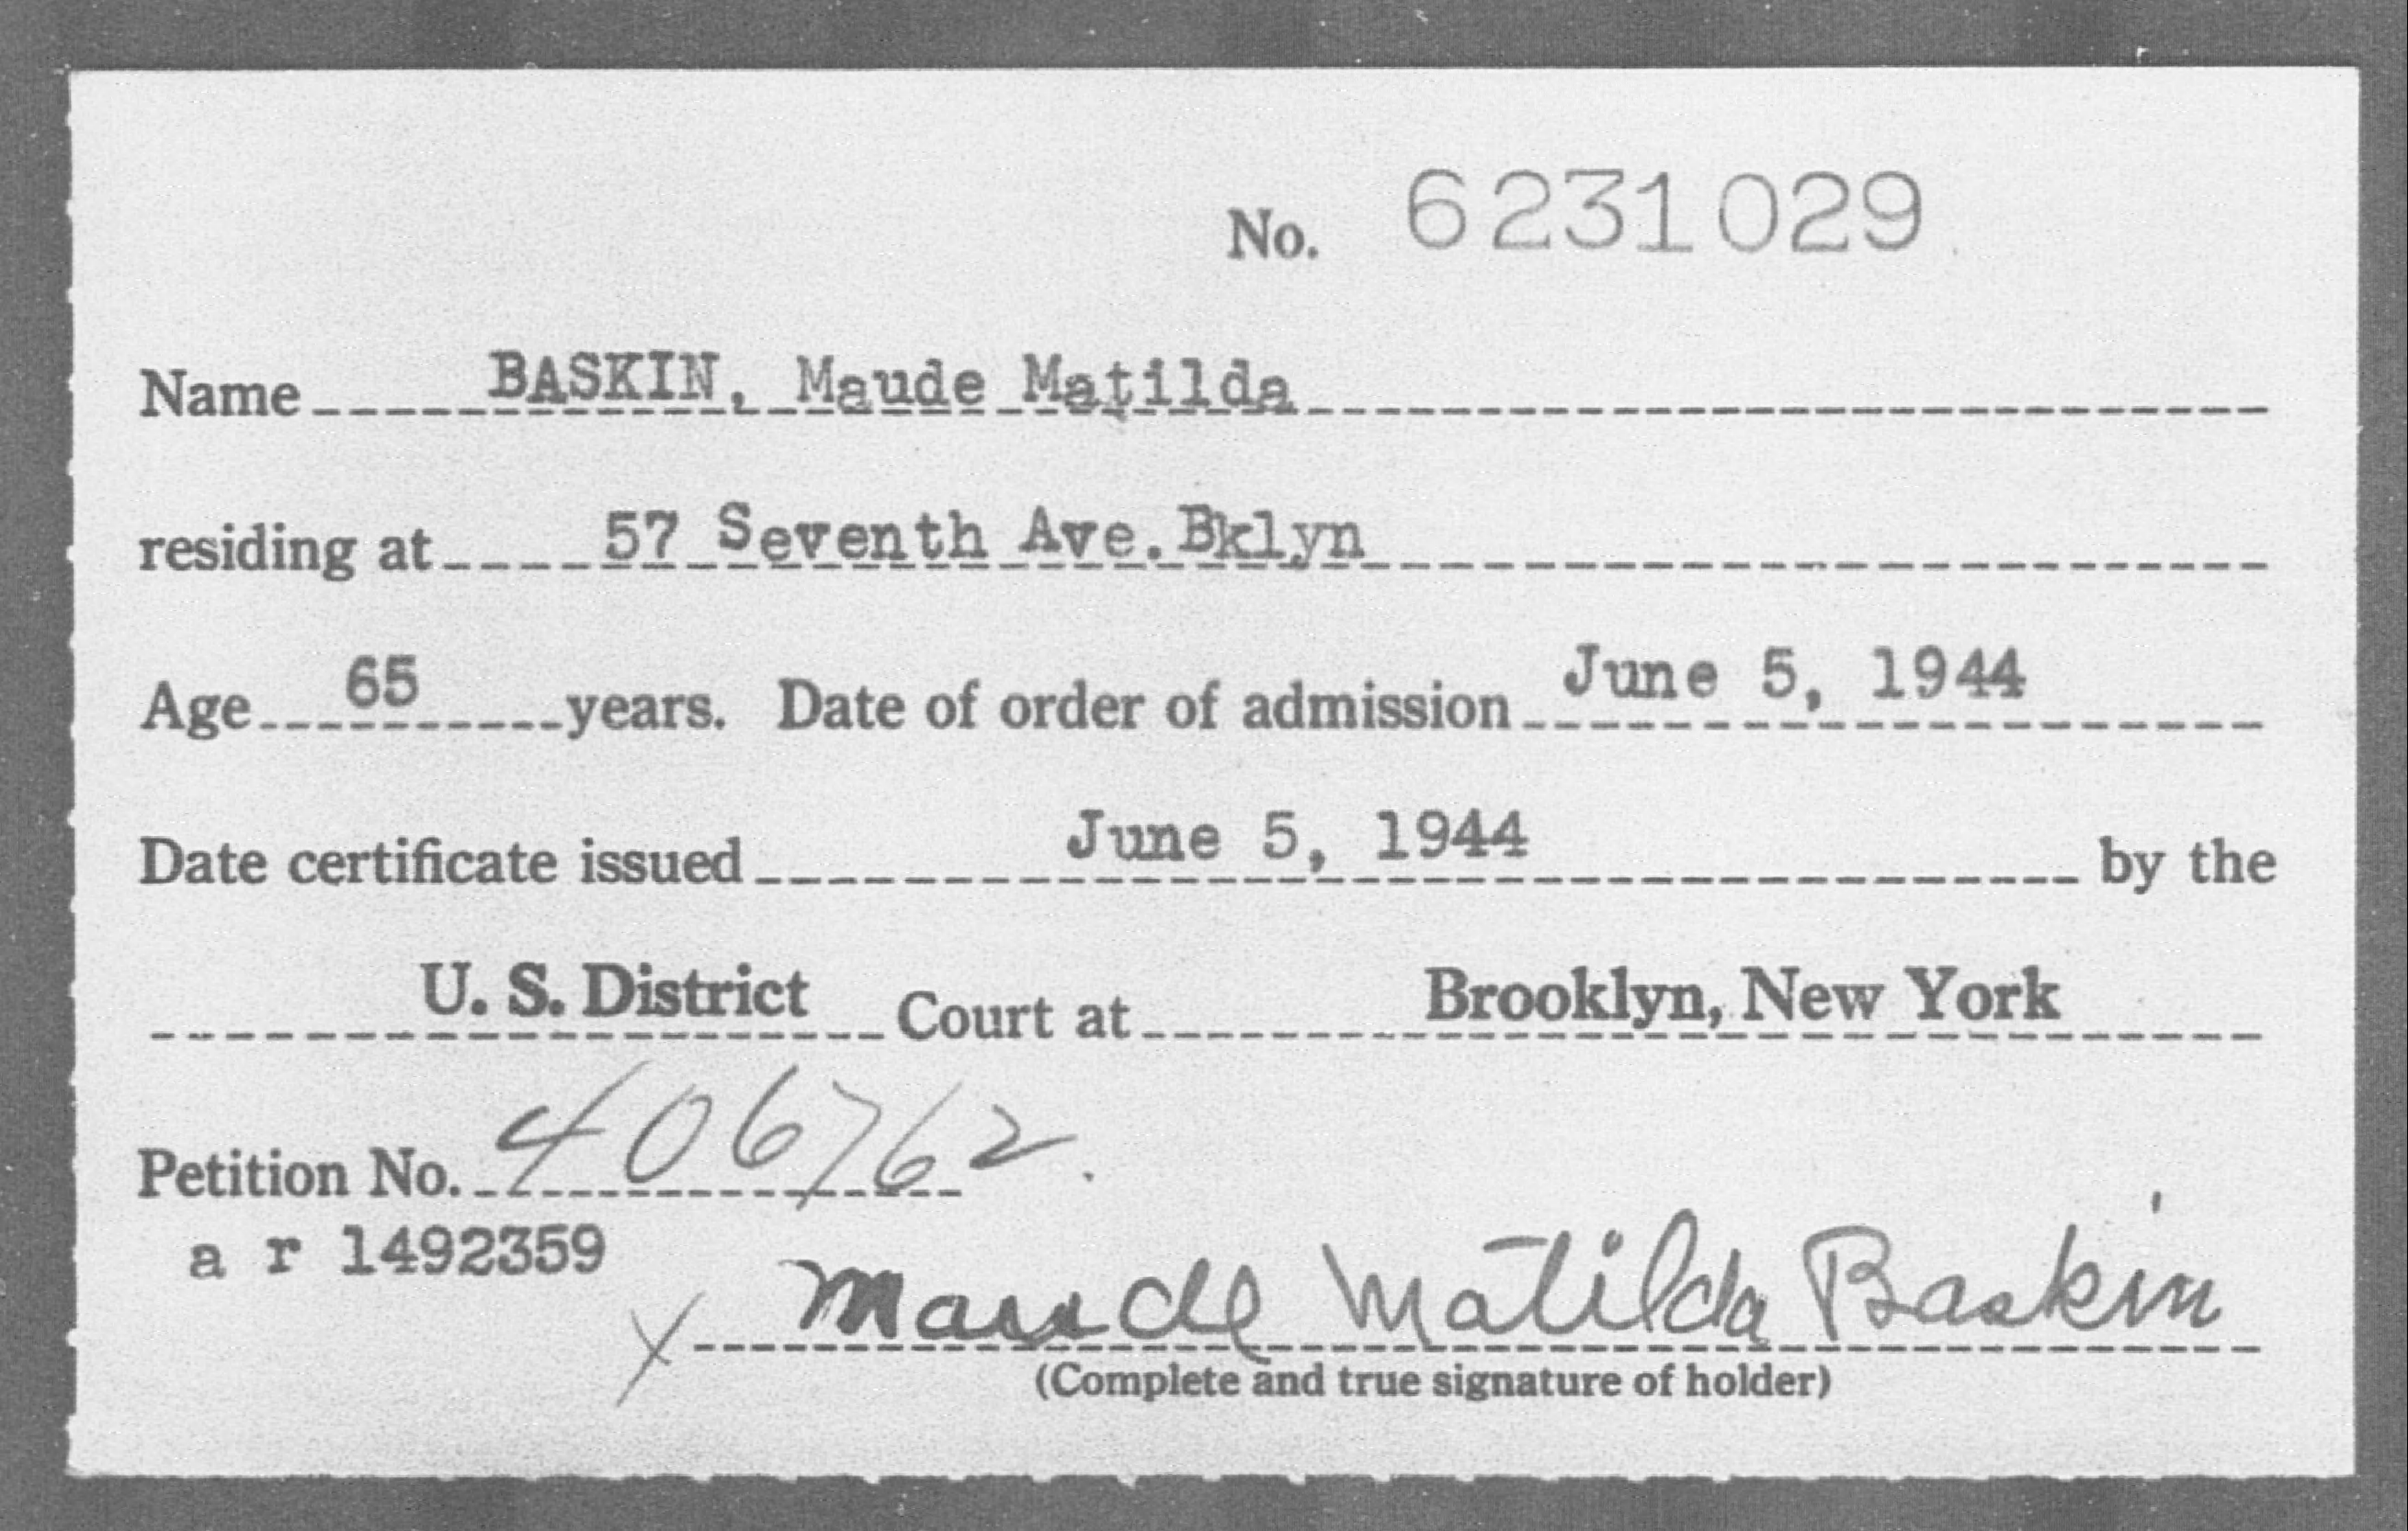 Baskin, Maude Matilda - Born: [BLANK], Naturalized: 1944